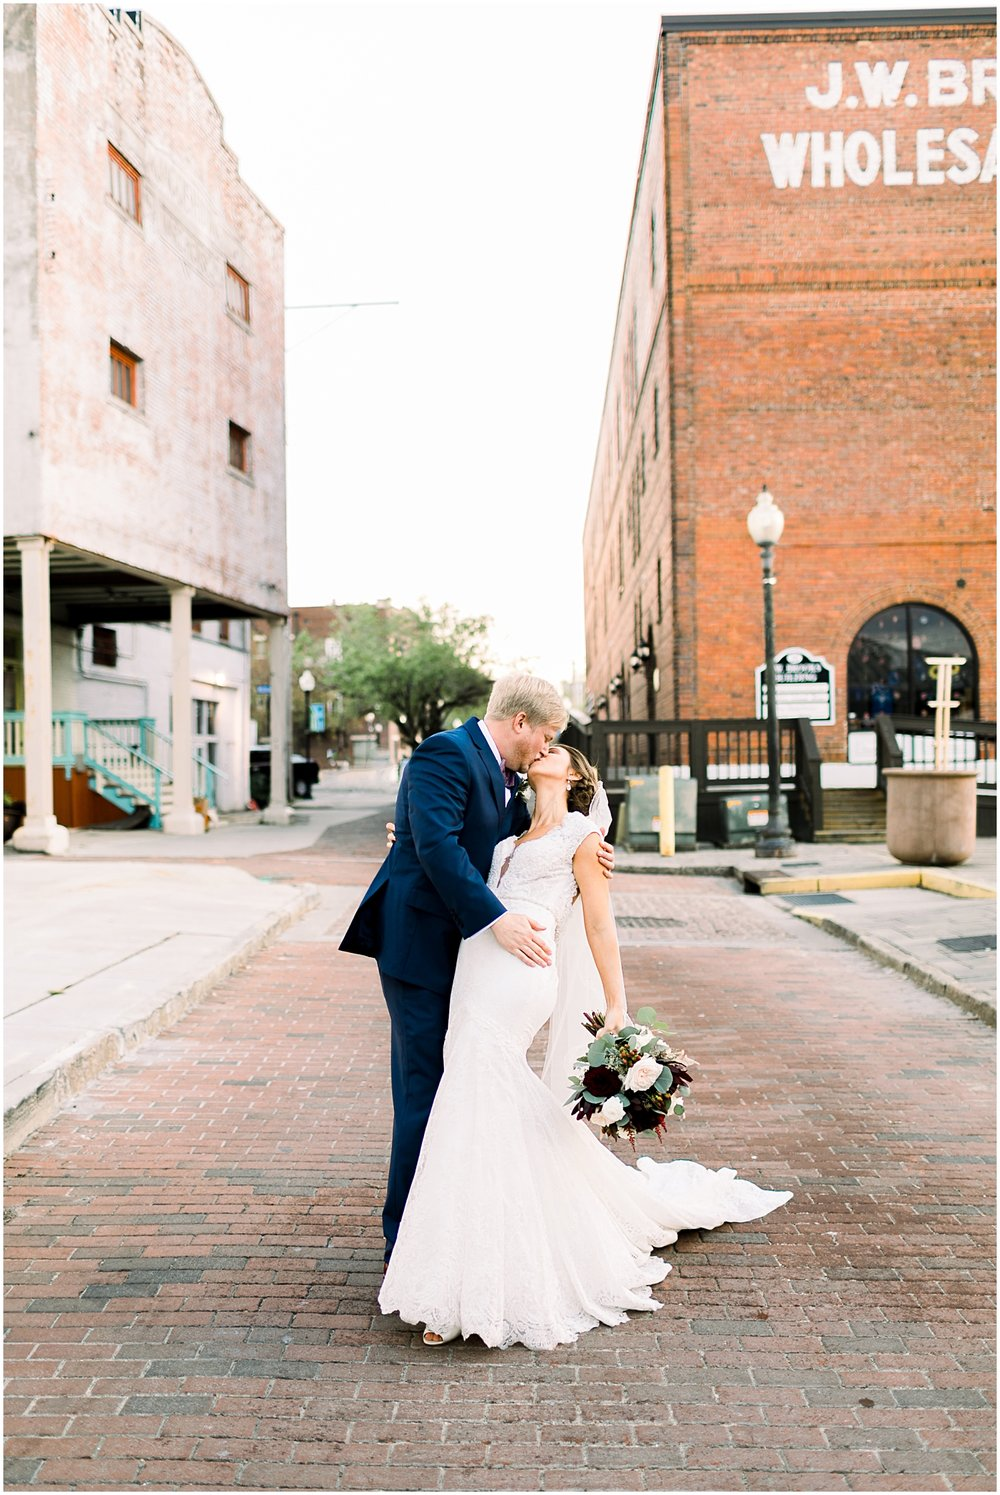 128 South Wedding venue, Downtown Wilmington NC Wedding_Erin L. Taylor Photography_0037.jpg